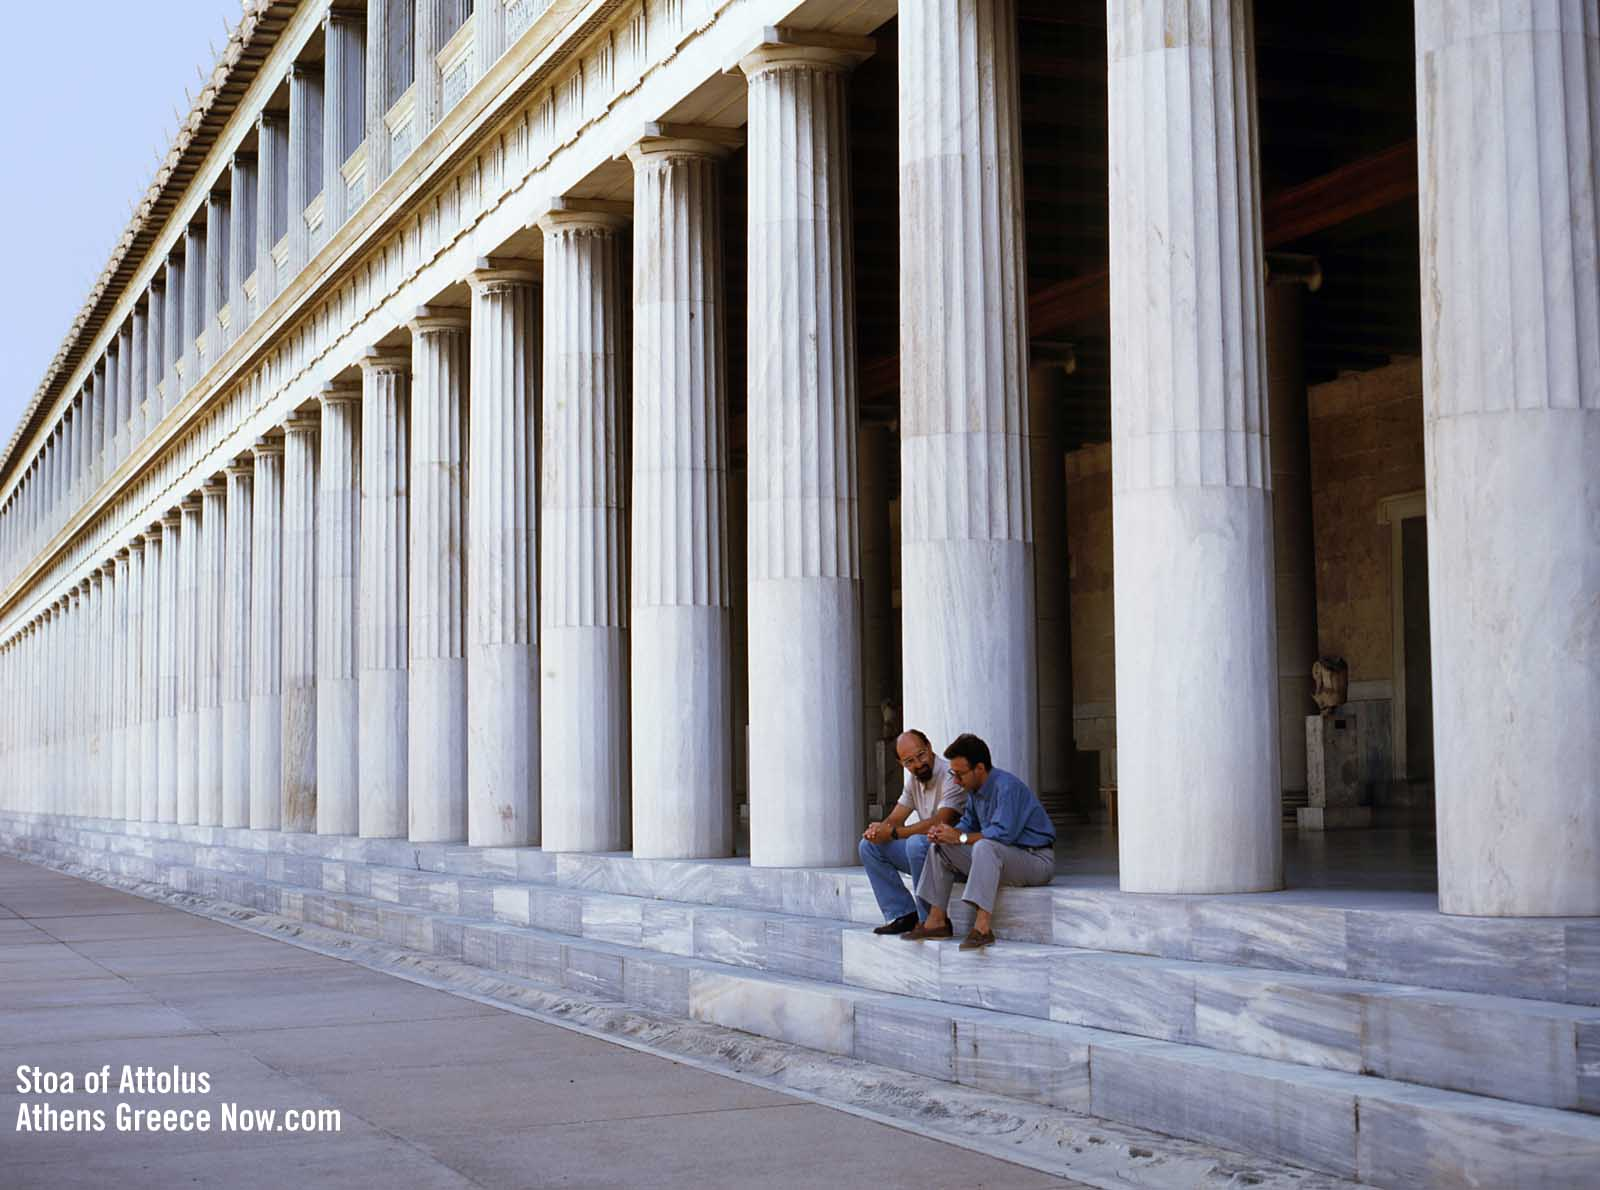 Enlarged view - Stoa of Attalos in Athens Greece with Doric and Ionic Columns